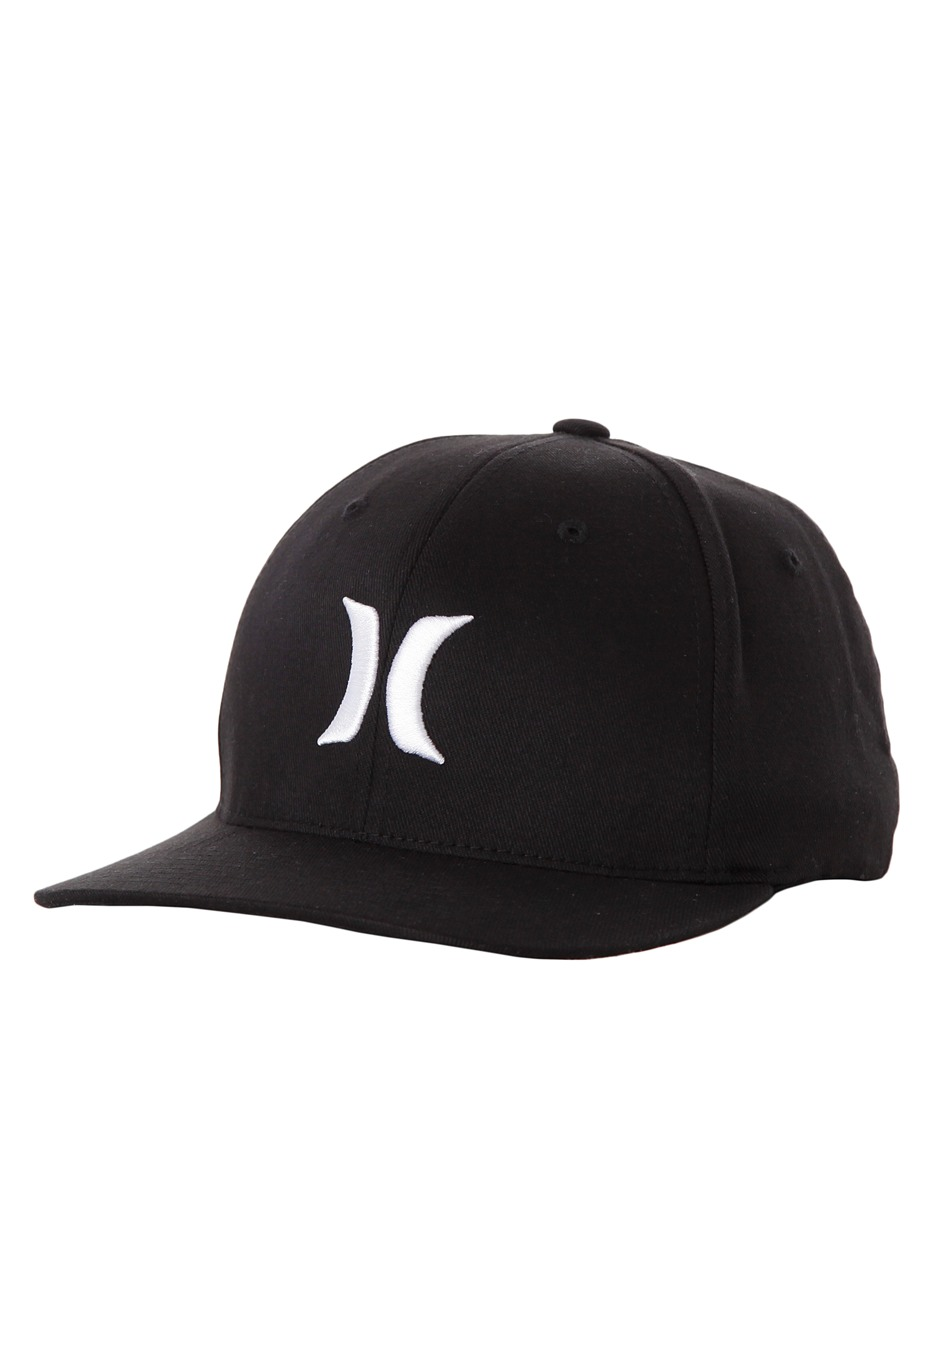 9eeaca9d3ee ... shopping hurley one only black white flexfit cap 6d578 17855